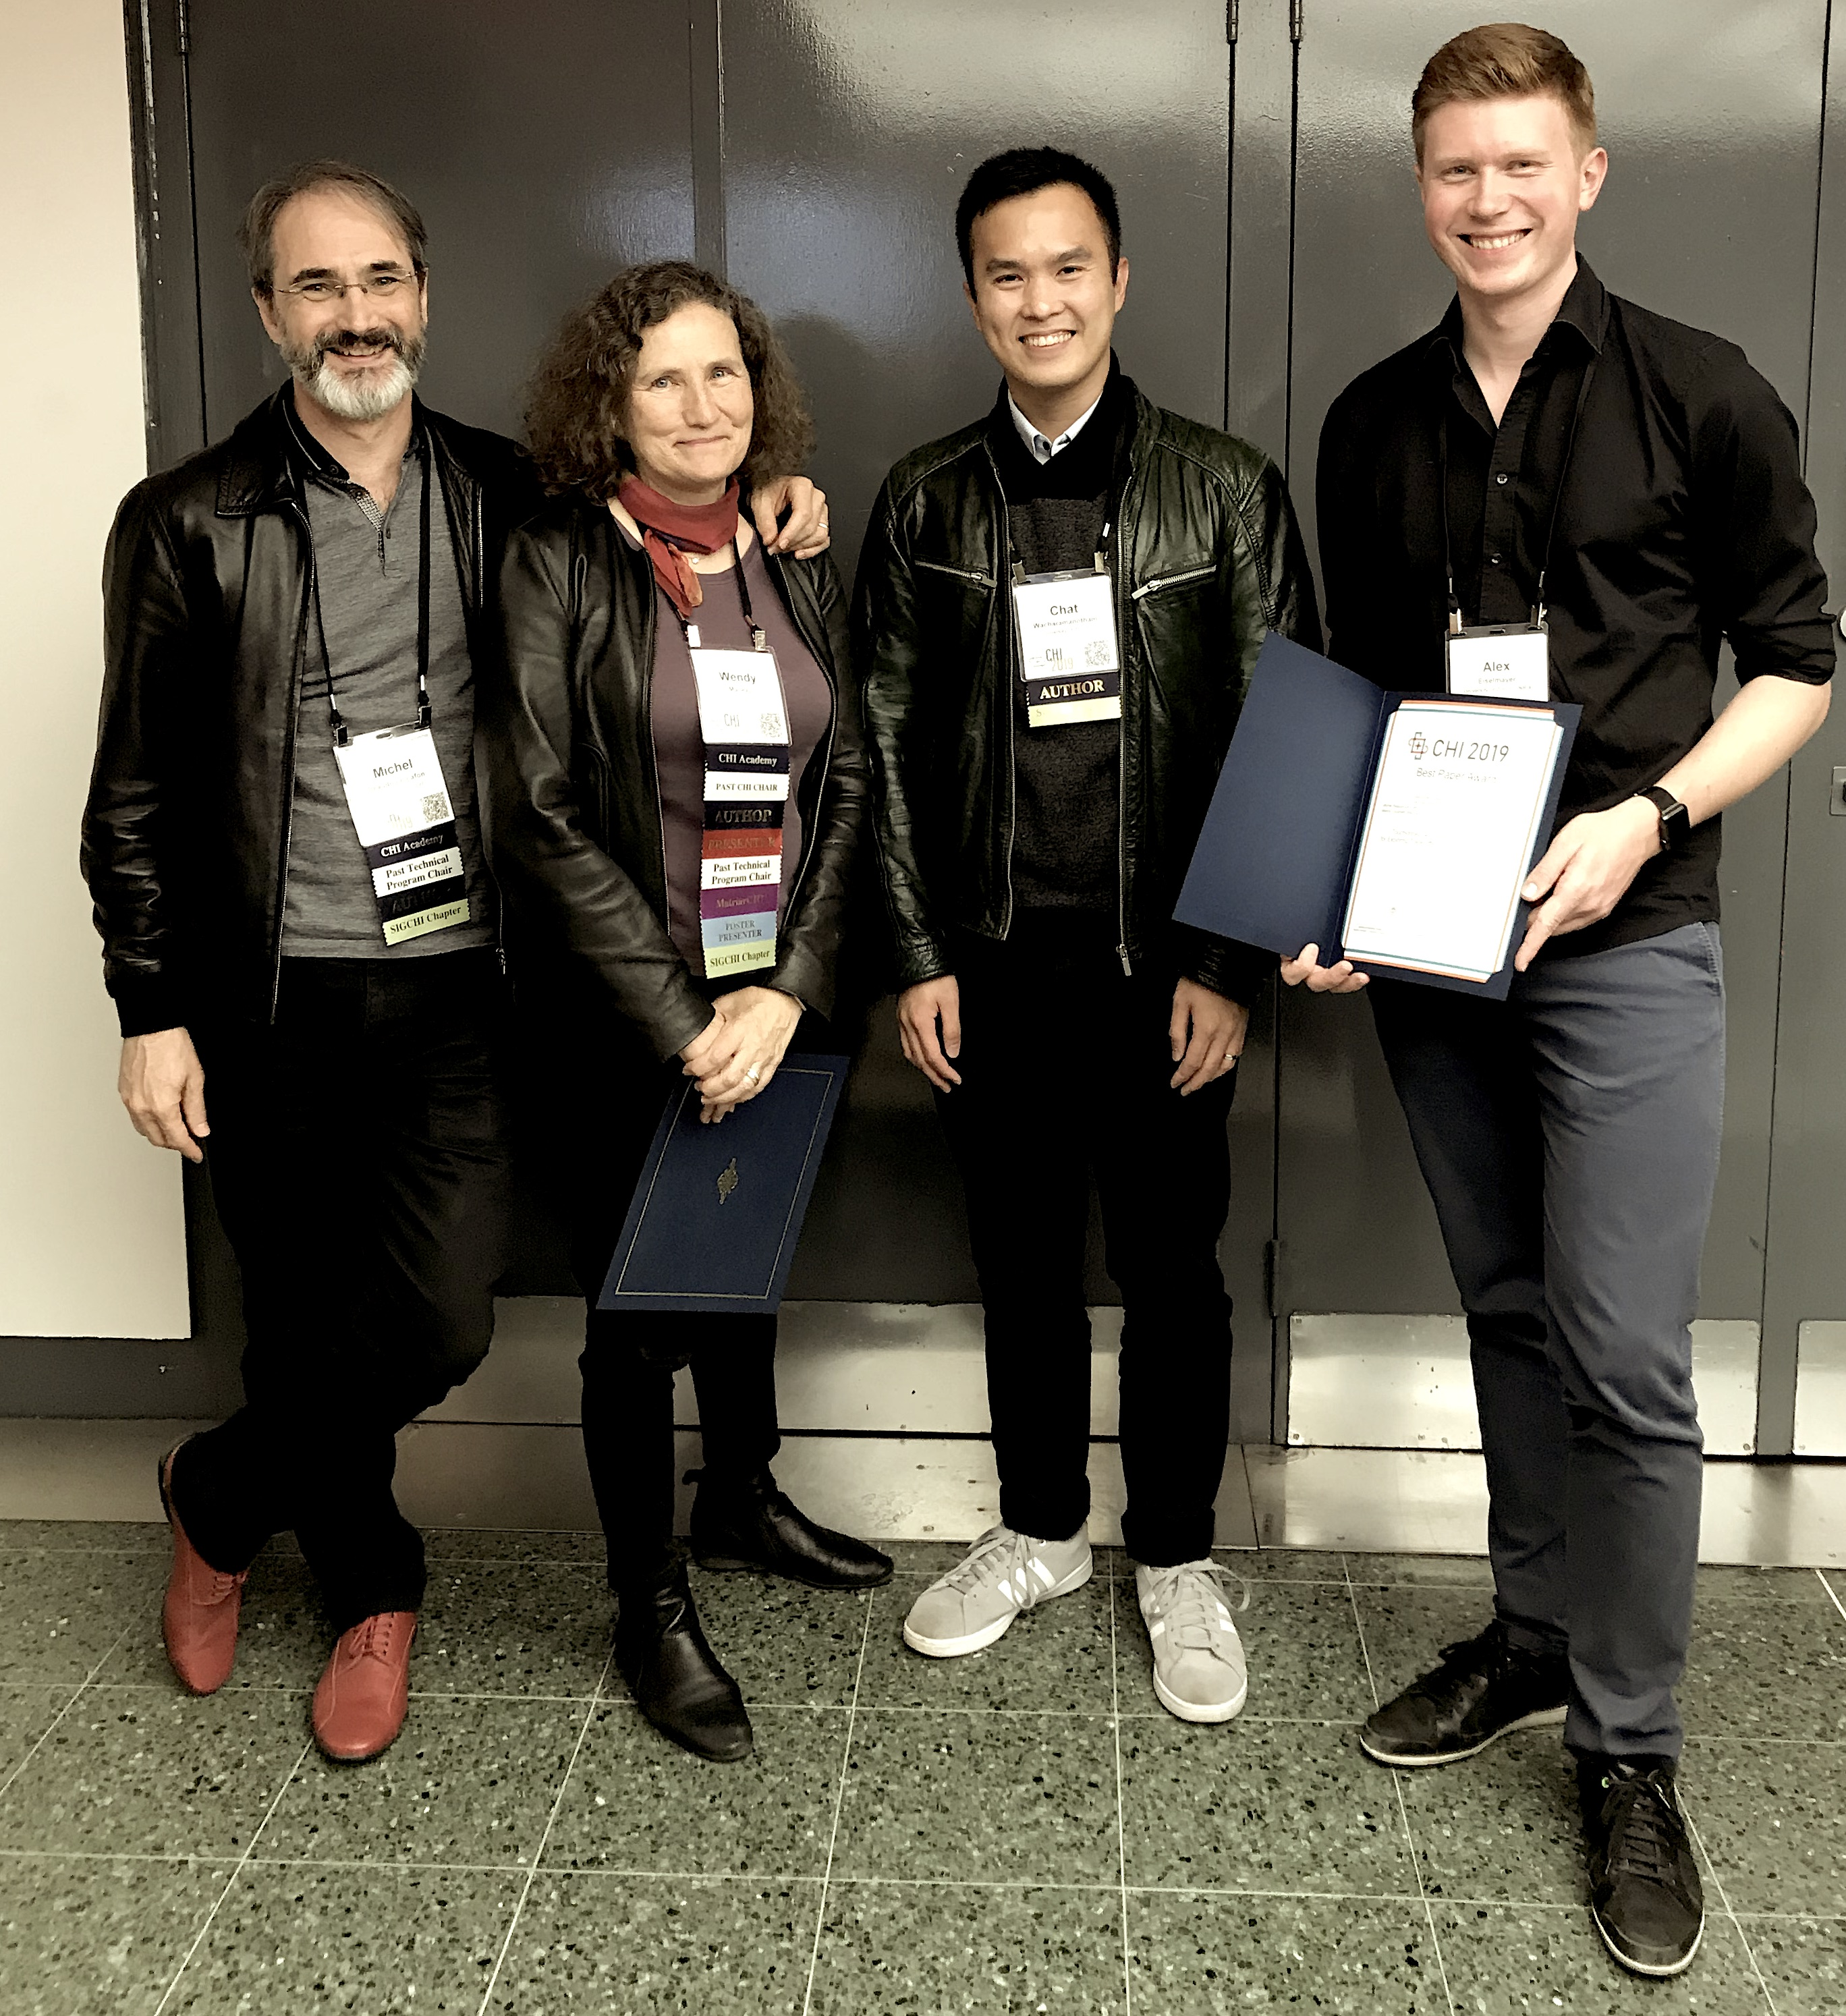 CHI 2019 Best Paper Award